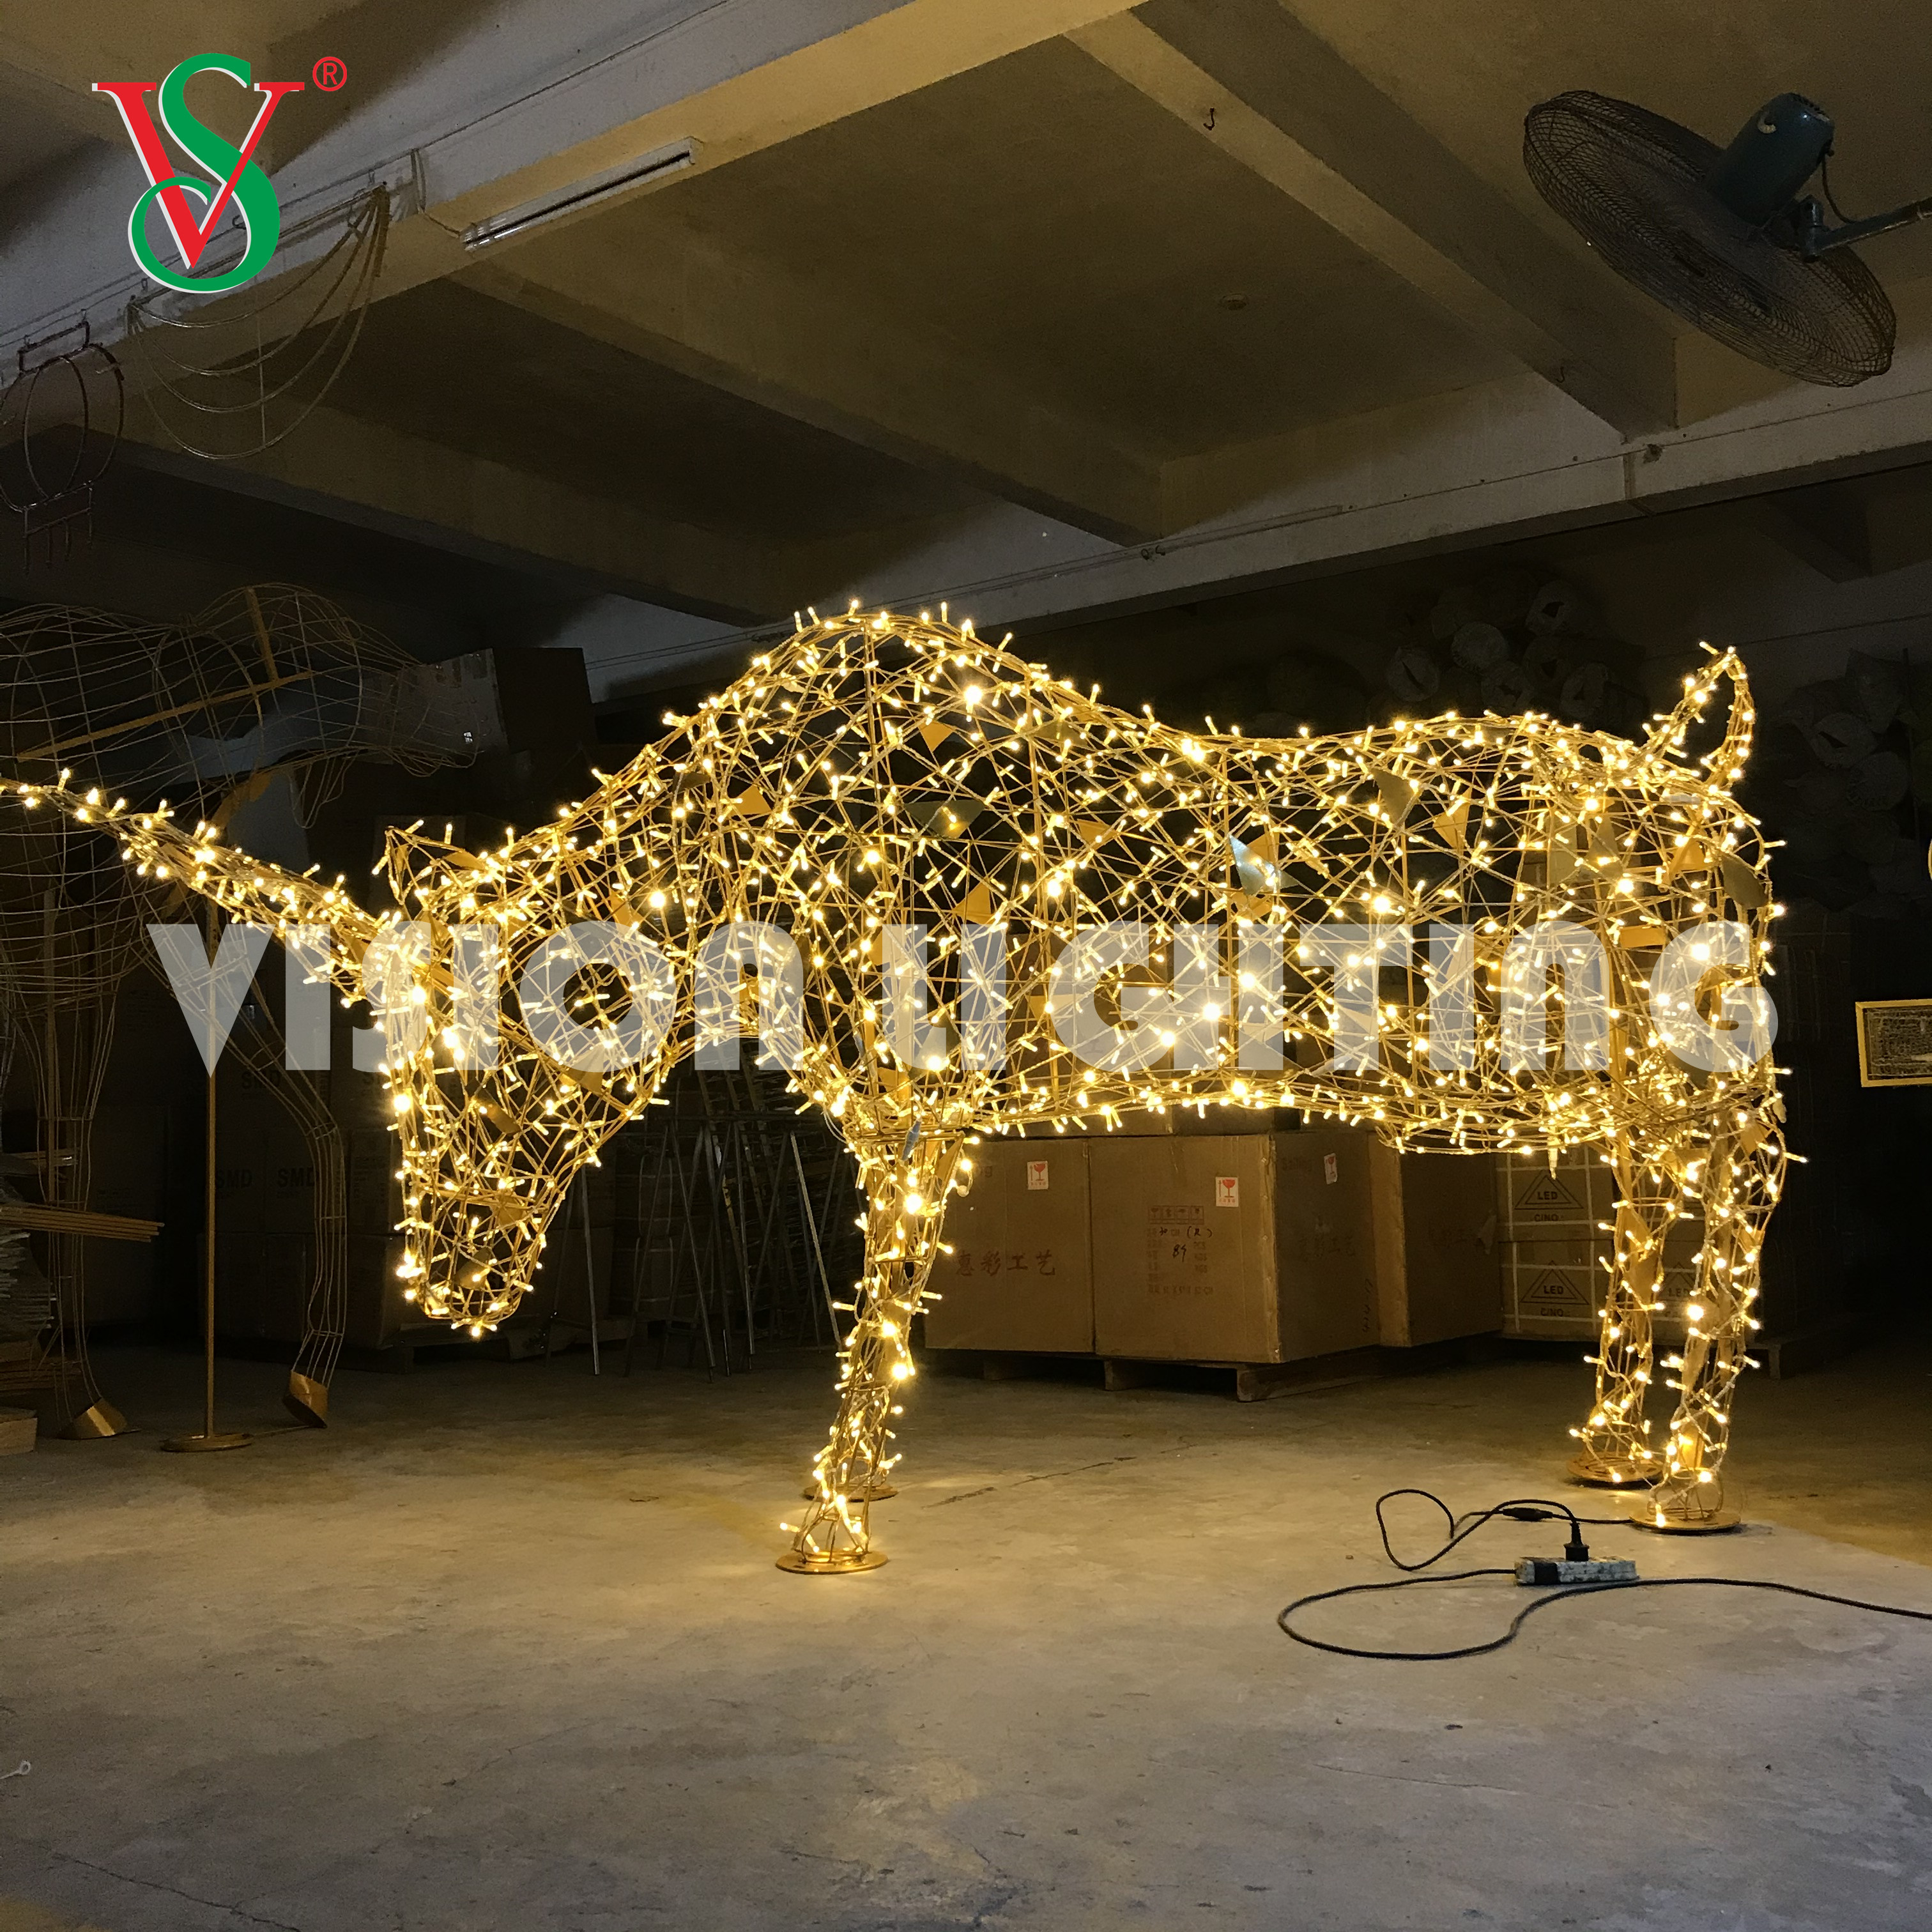 LED Vivid Simulated 3D Lighted Bull OX Animal Sculpture Light for Outdoor Decoration